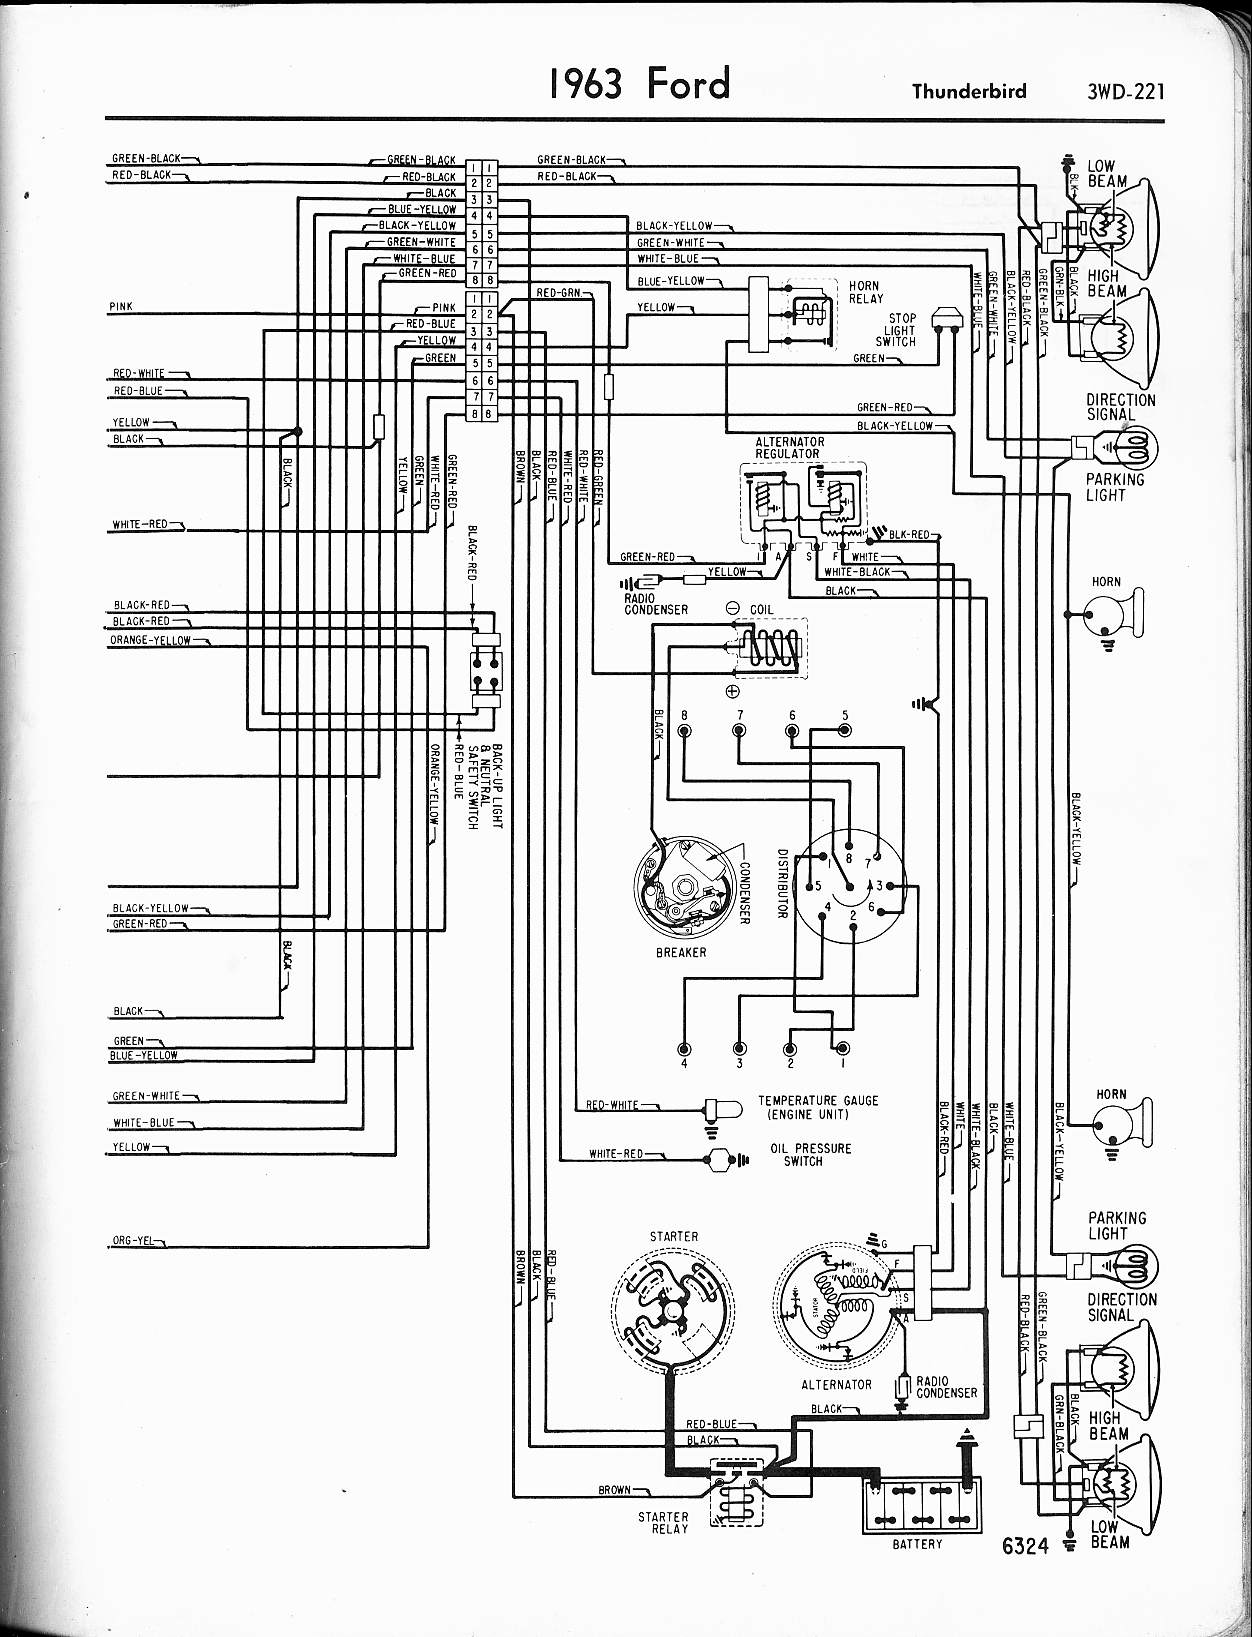 55 ford truck wiring diagram detailed schematics diagram rh jppastryarts  com 1975 ford f100 ignition wiring diagram 1968 ford f100 ignition wiring  diagram